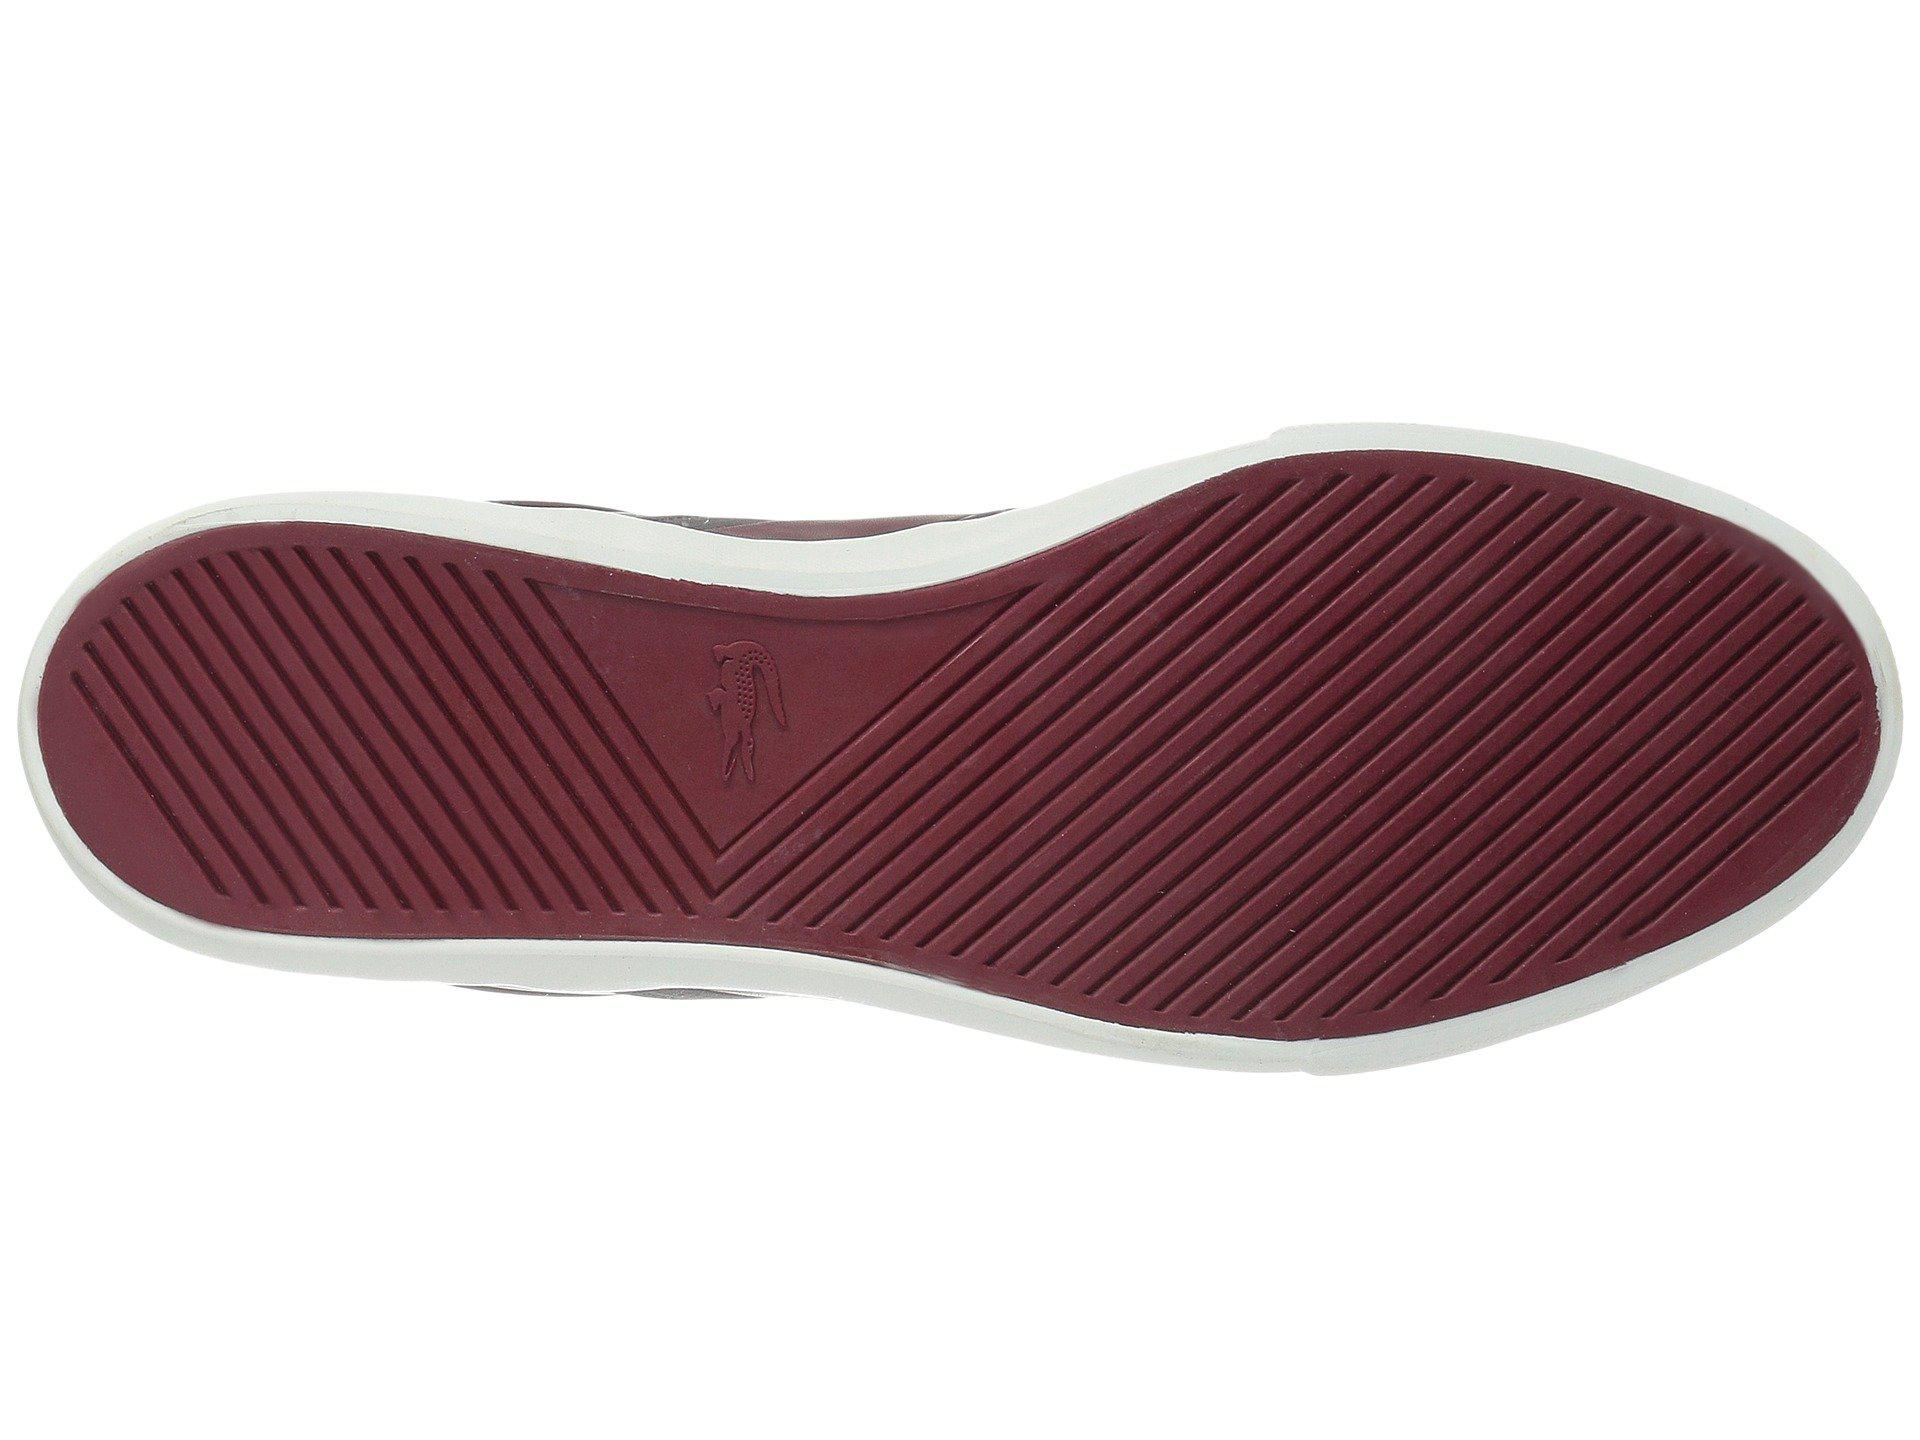 52c860b26be89c Lyst - Lacoste Fairlead 416 1 in Red for Men